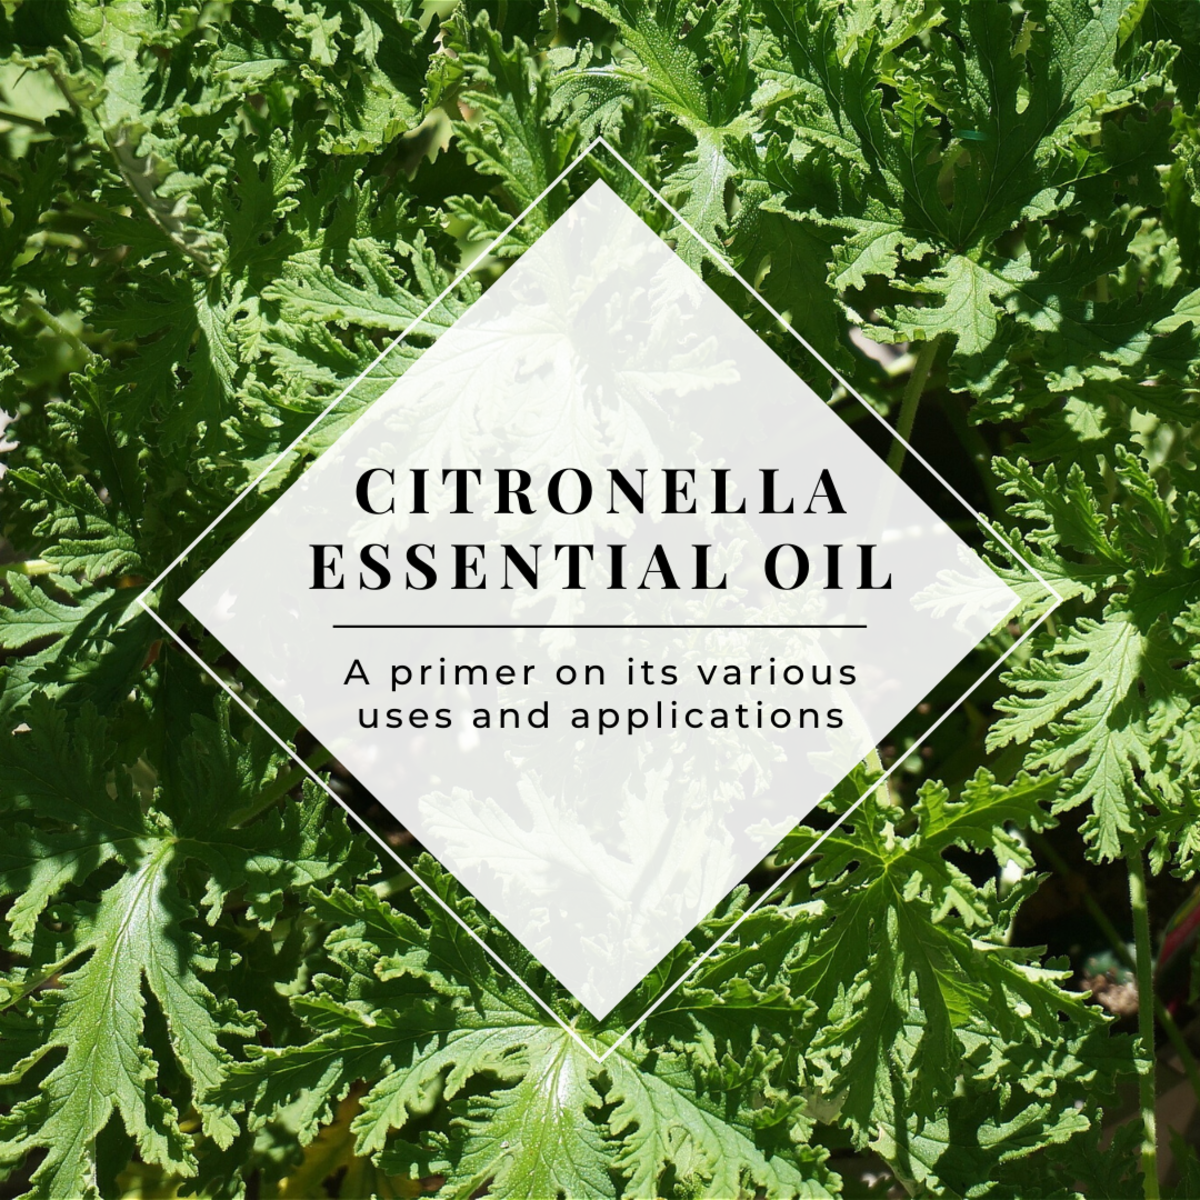 This article will break down a number of the various medicinal applications and other uses of citronella essential oil.